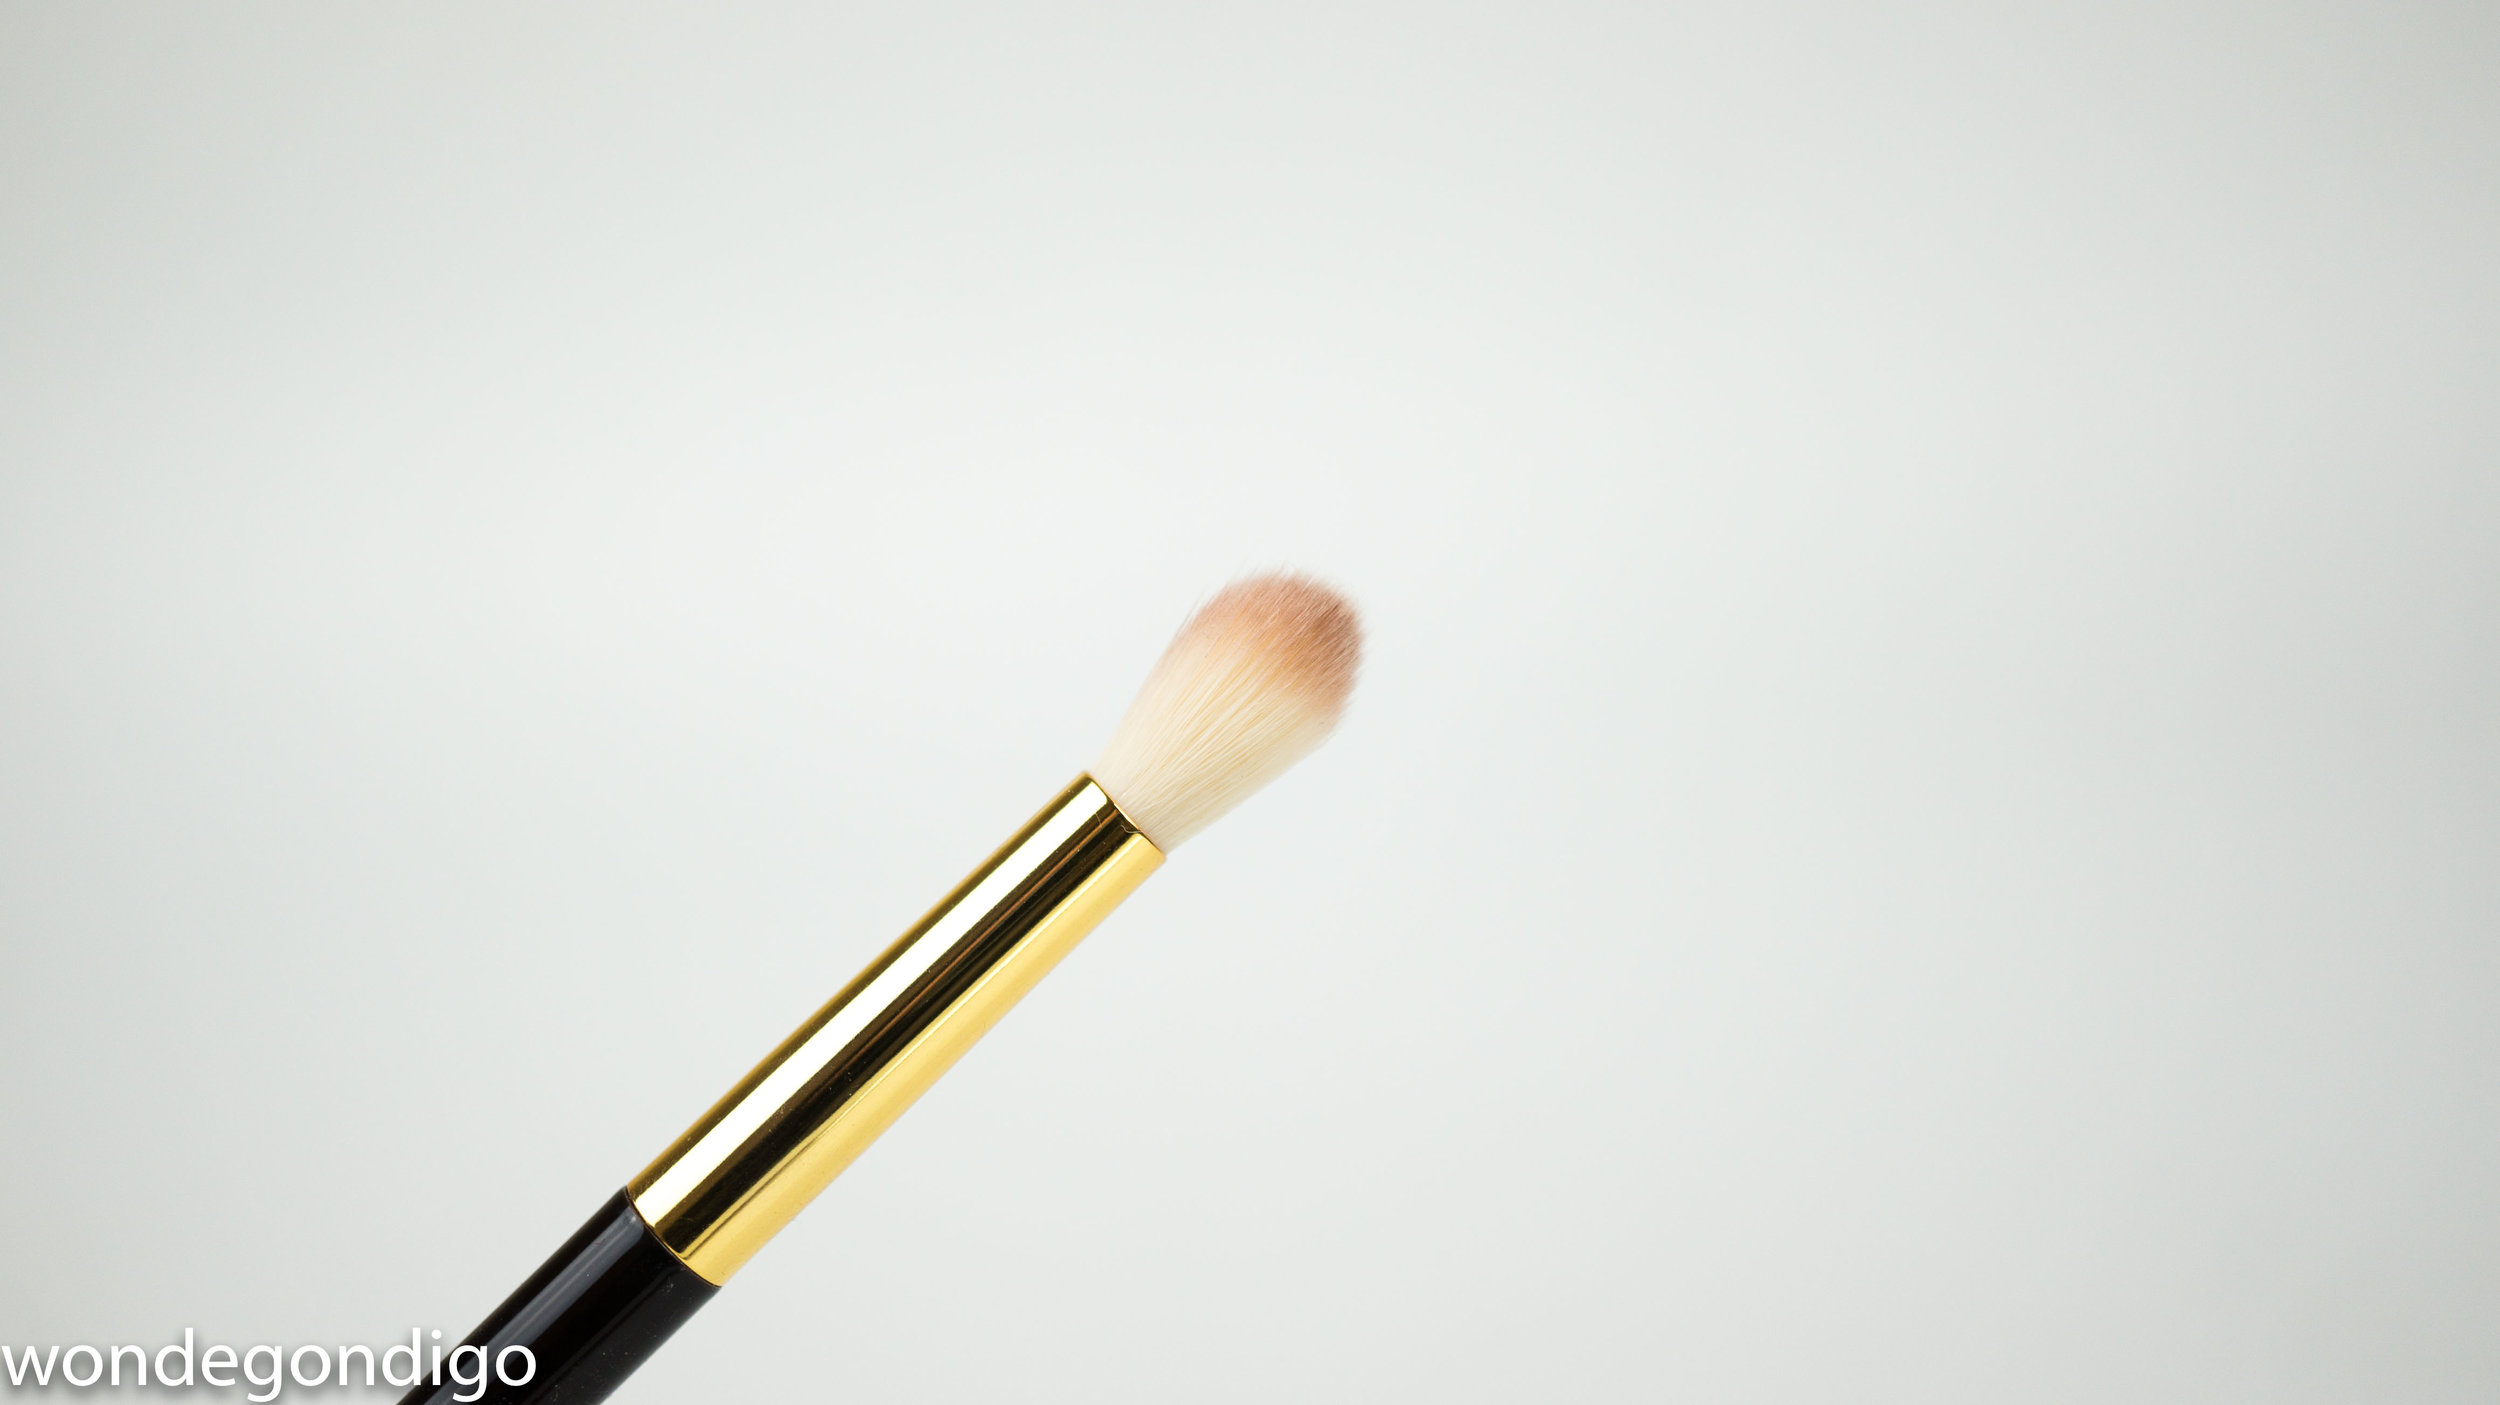 Tom Ford's 13 Eyeshadow Blend Brush in Synthetic